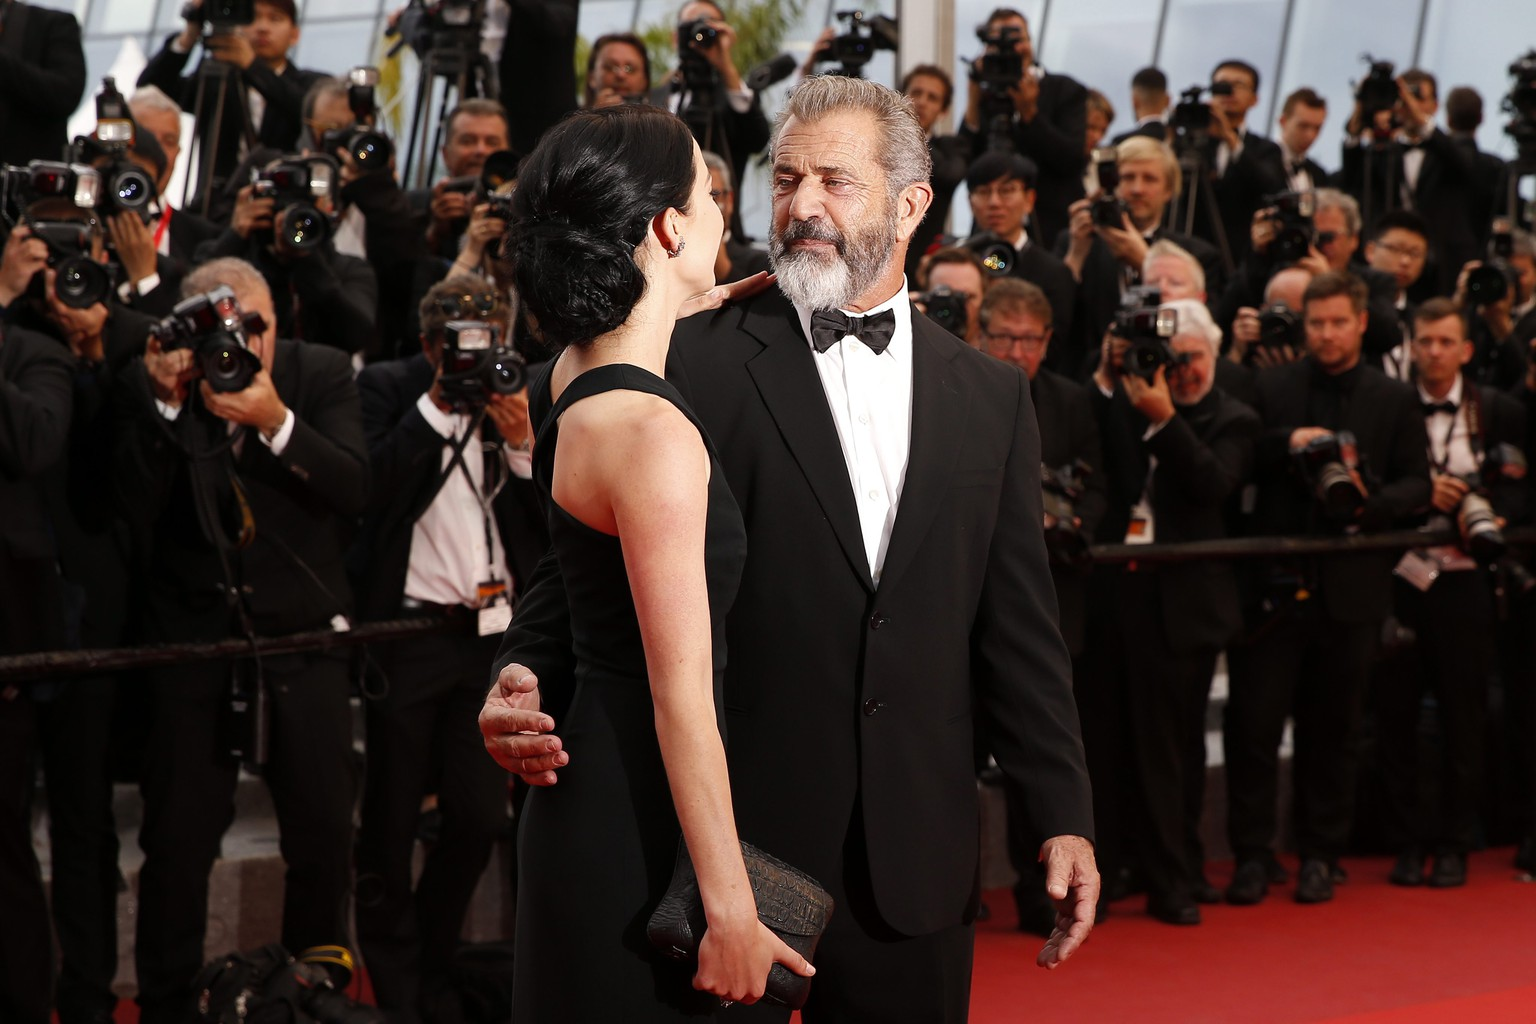 epa05323733 US actor Mel Gibson (R) and girlfriend Rosalind Ross (L) arrive for the Closing Awards Ceremony of the 69th annual Cannes Film Festival, in Cannes, France, 22 May 2016. For the first time in the festival history, the Golden Palm winning movie will be screened at the closing ceremony.  EPA/SEBASTIEN NOGIER